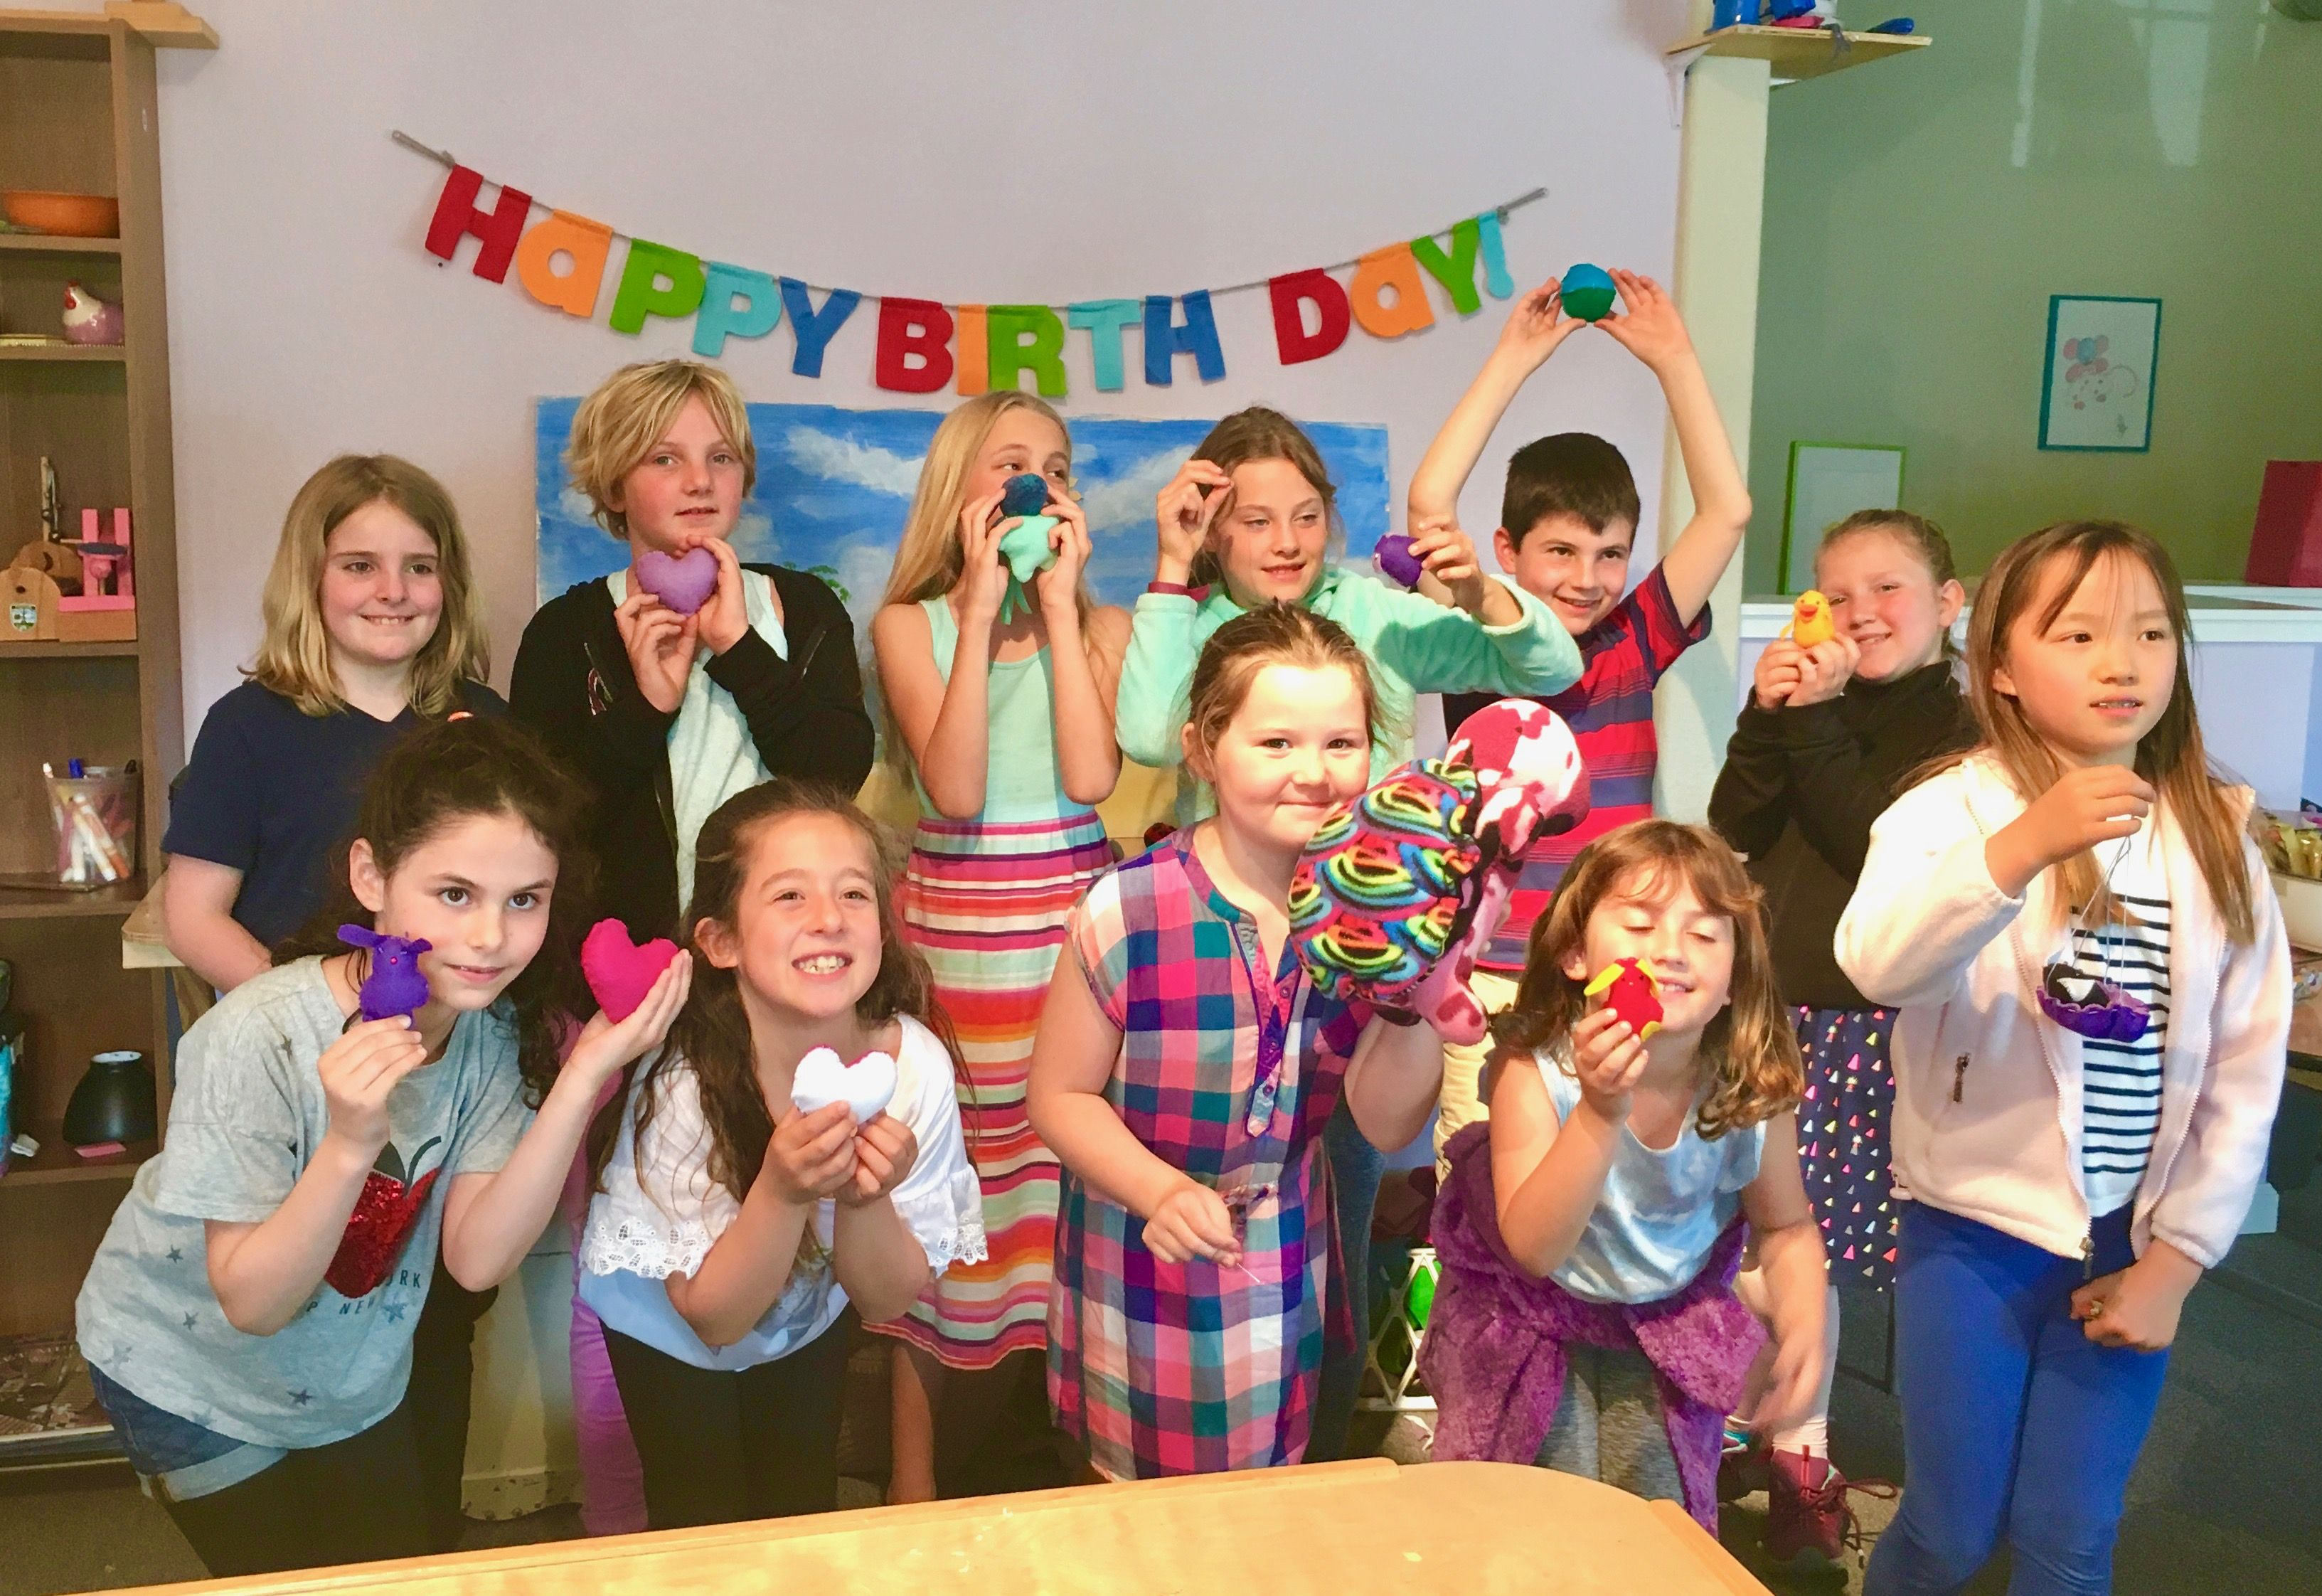 Top 21 Kids Birthday Party Venues In The Bay Area Kids Party Venues Birthday Party Venues Kids Birthday Party Venues